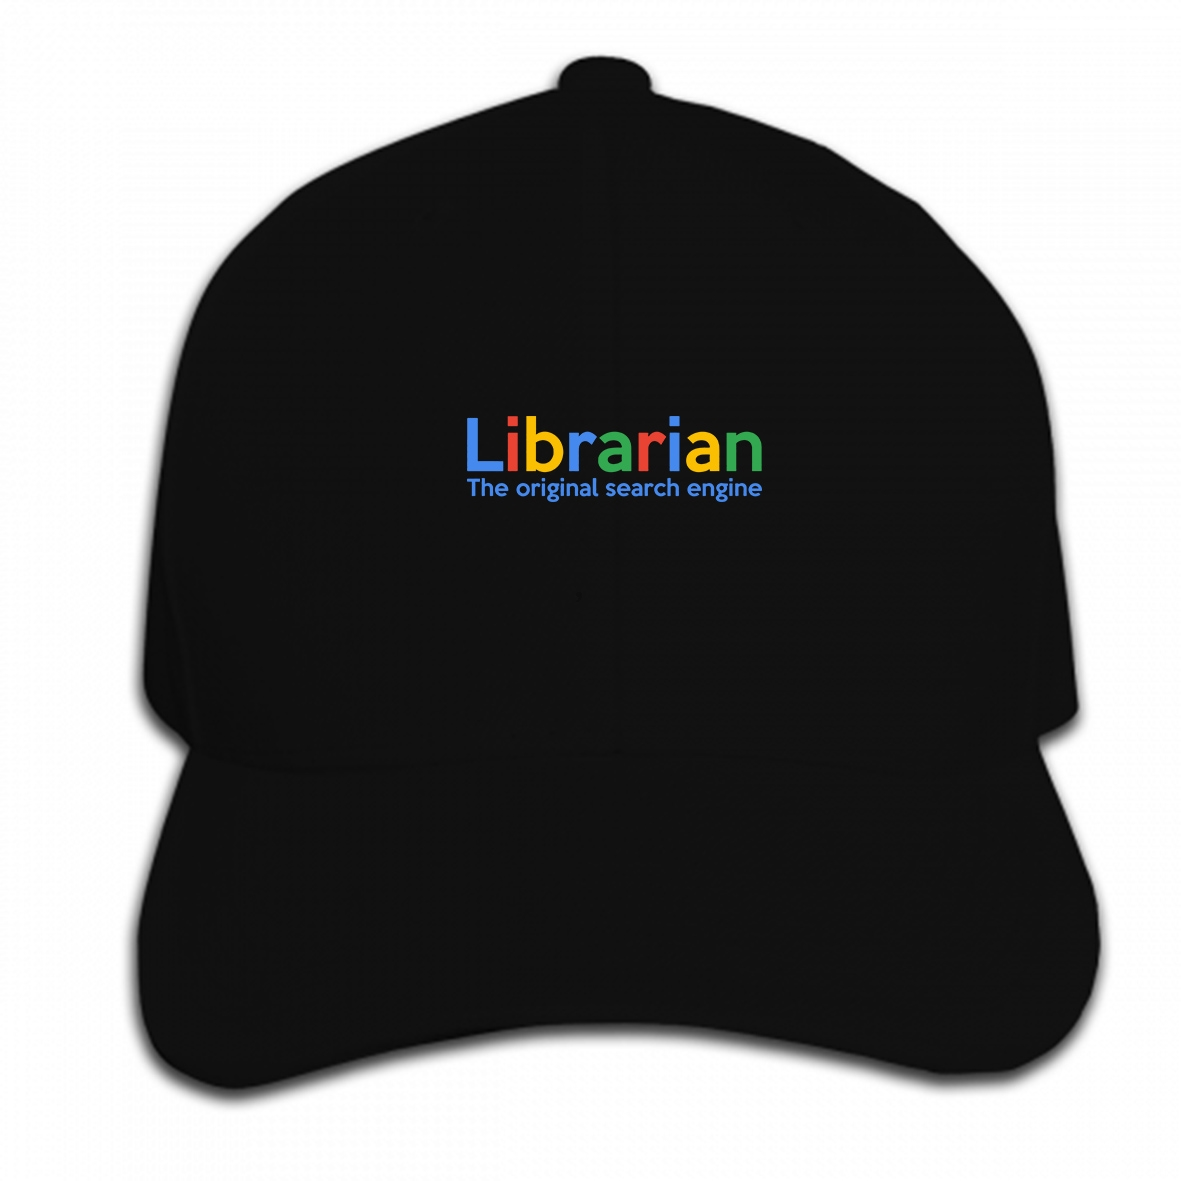 Print Custom Baseball Cap Librarian The Original Search Engine Funny Library Over Style Styles Print Male Brand Hat Peaked cap image